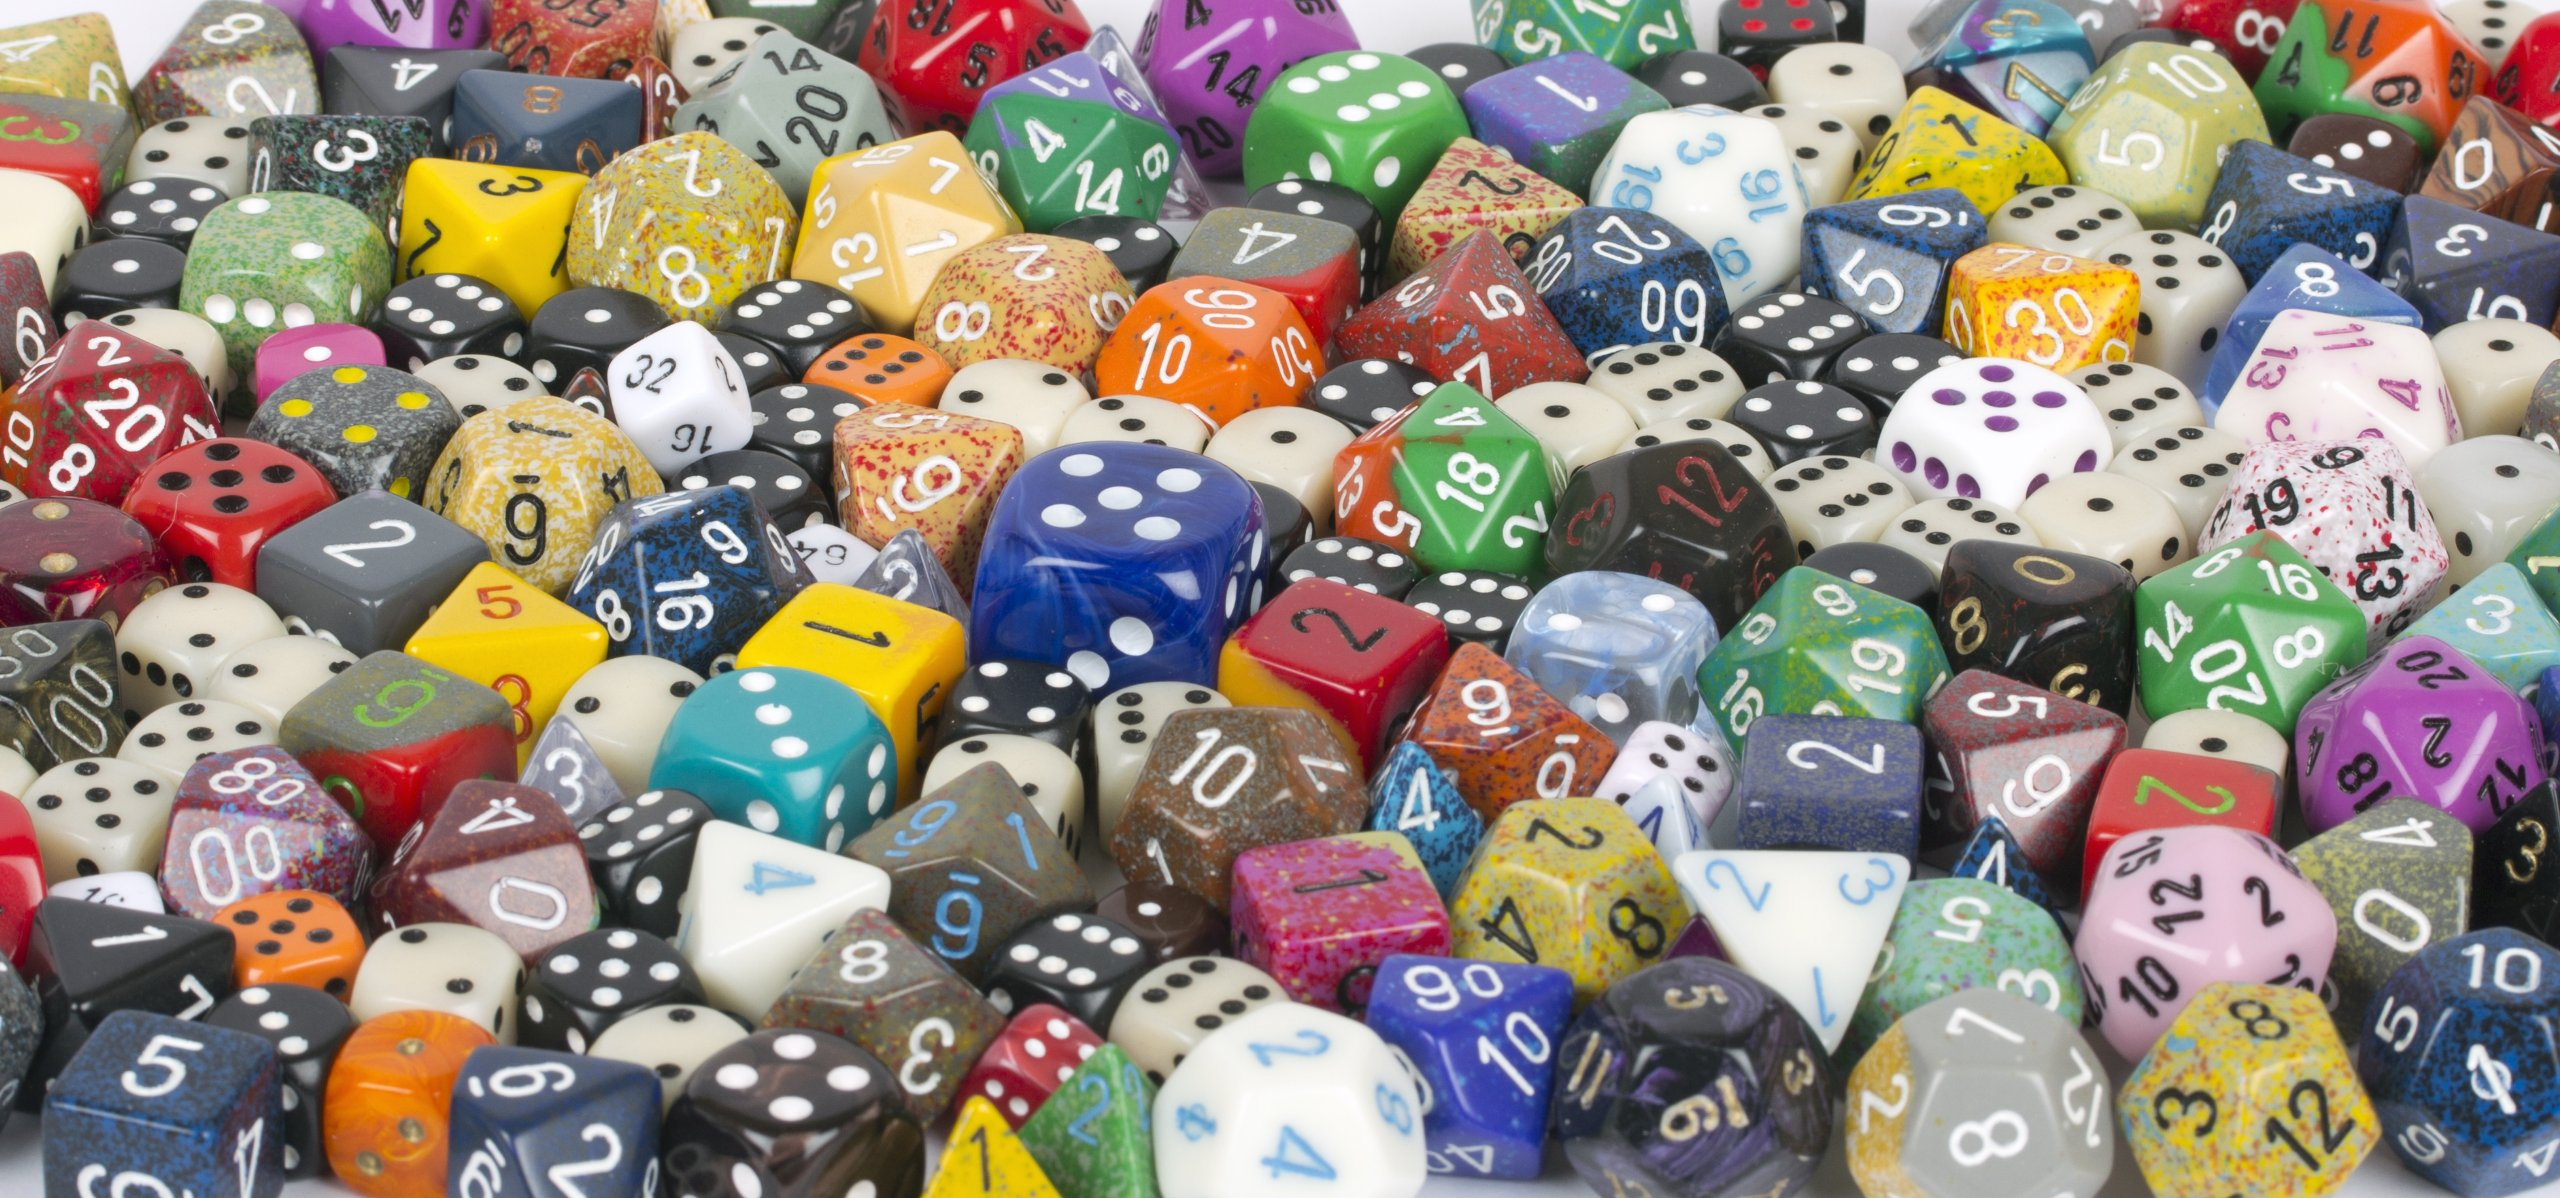 Chessex Pound-O-Dice by Chessex